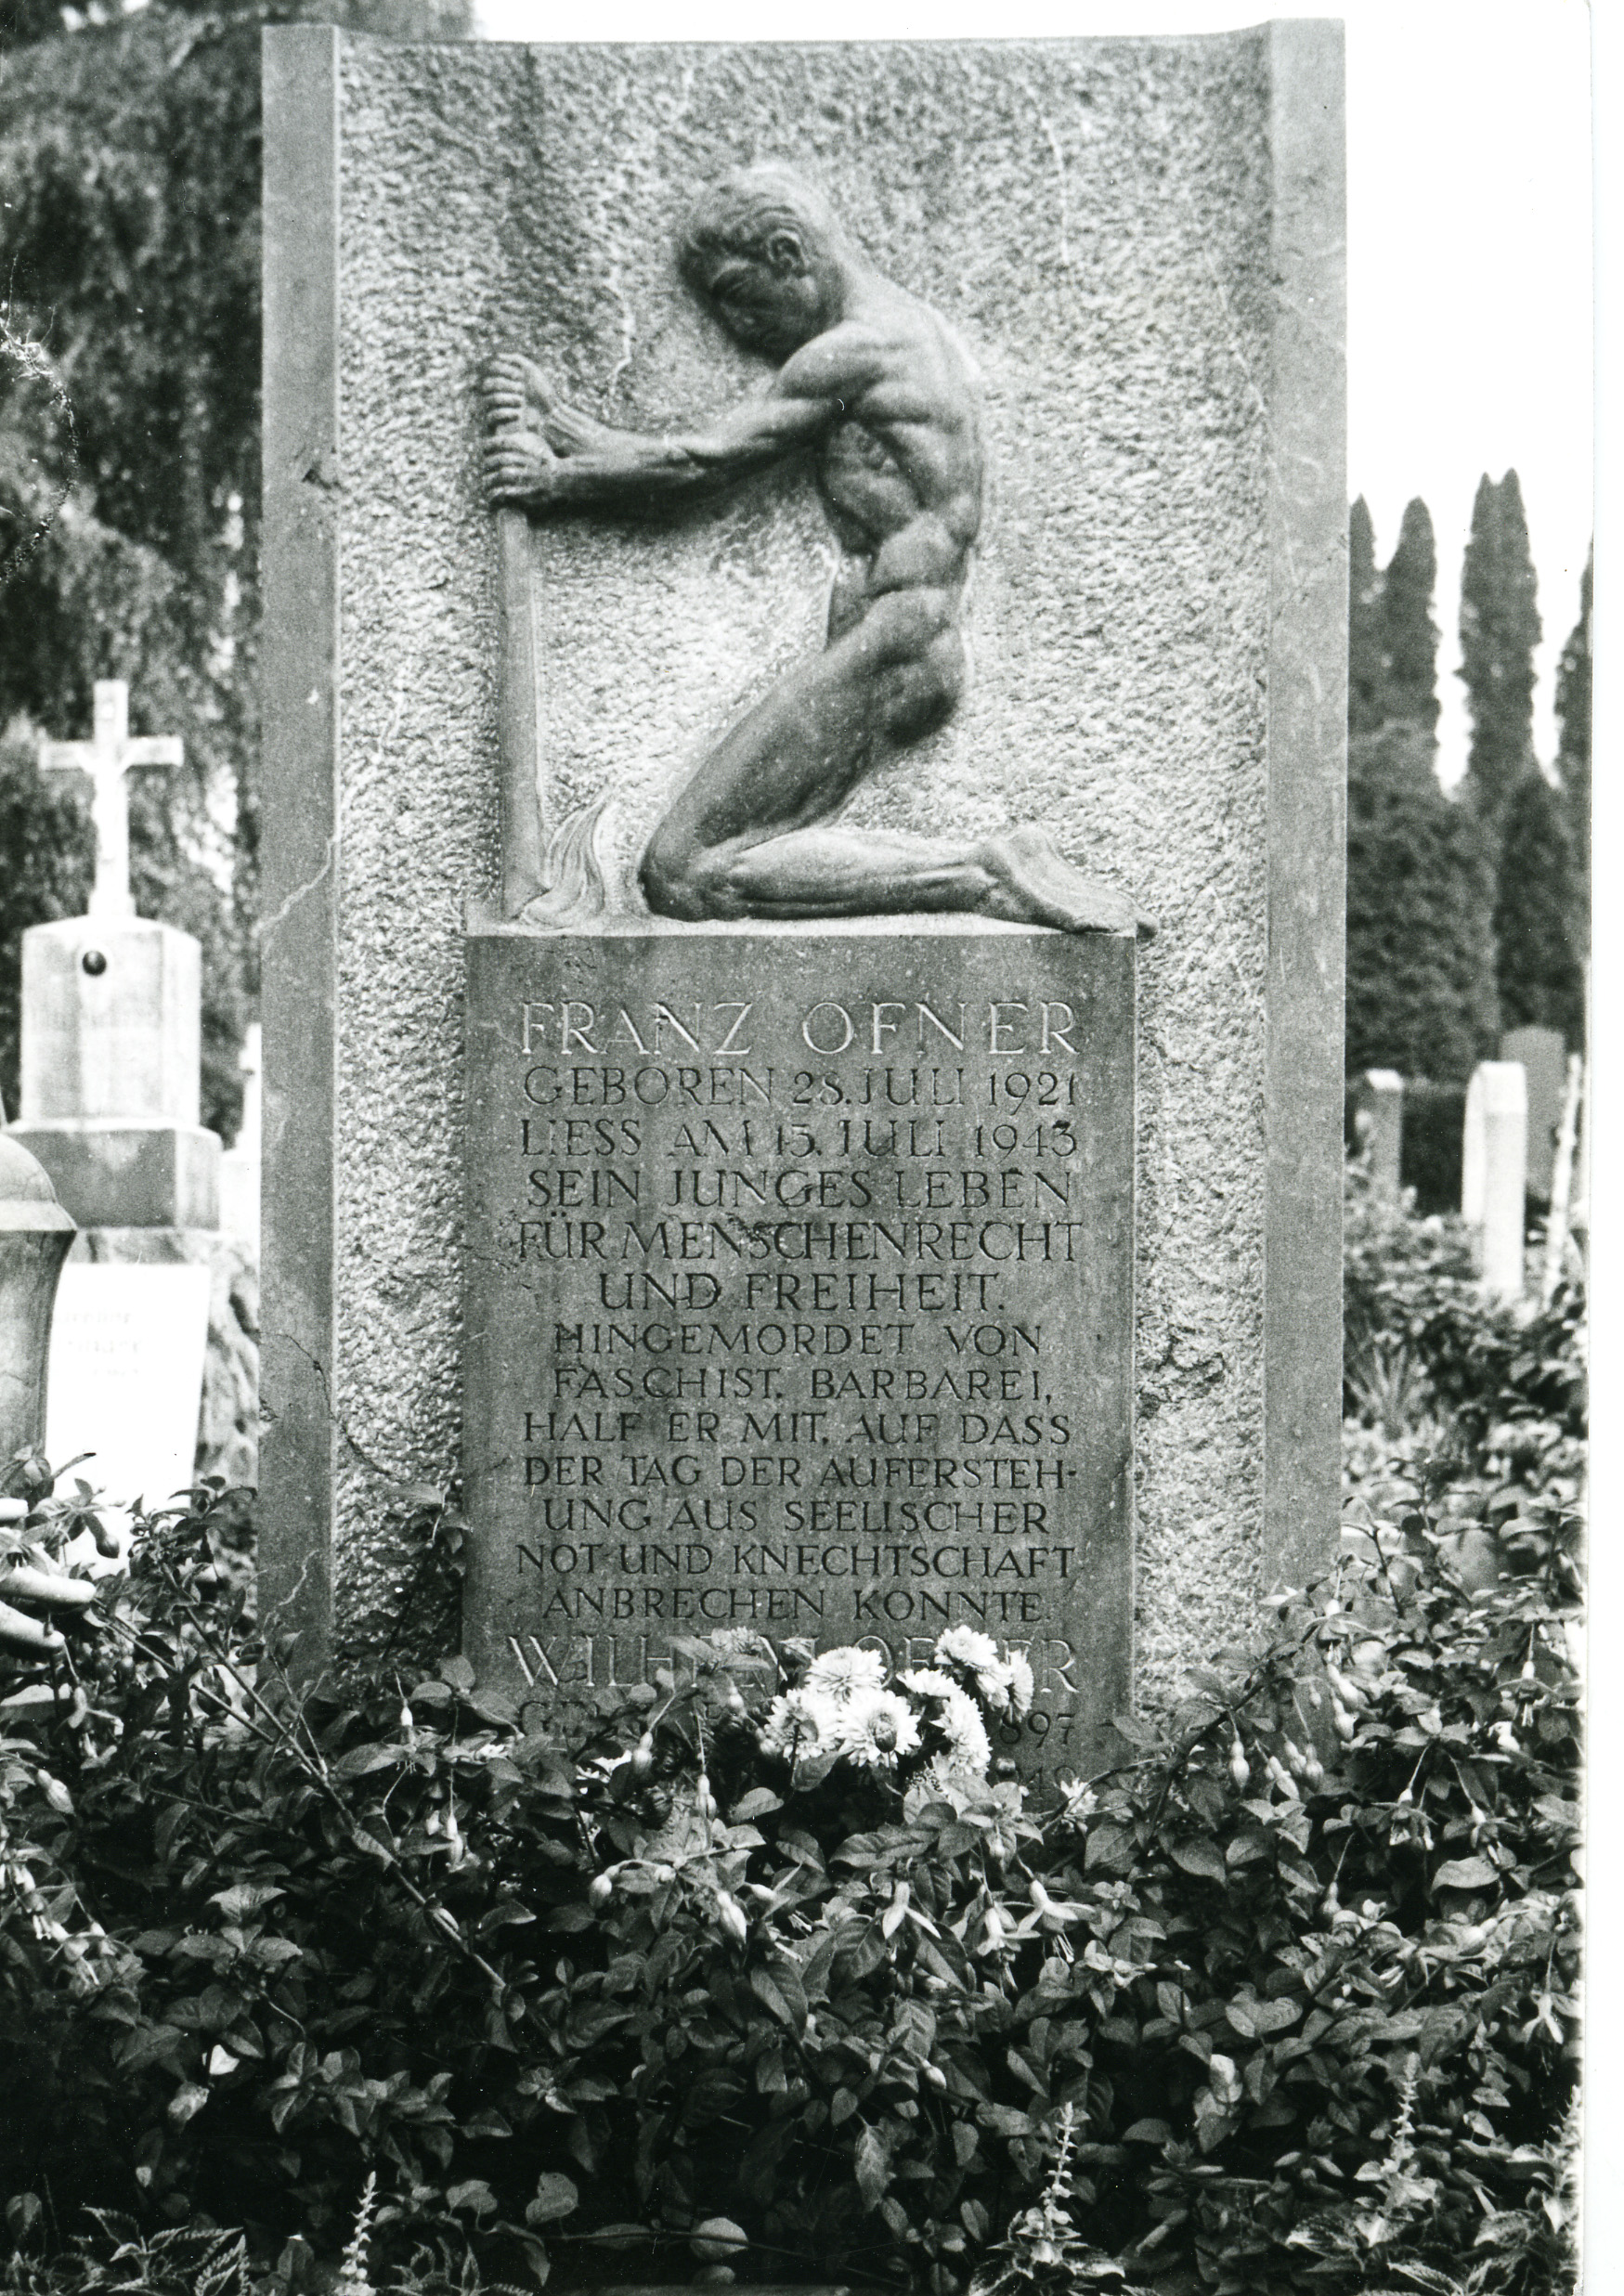 Tombstone of Franz Ofner